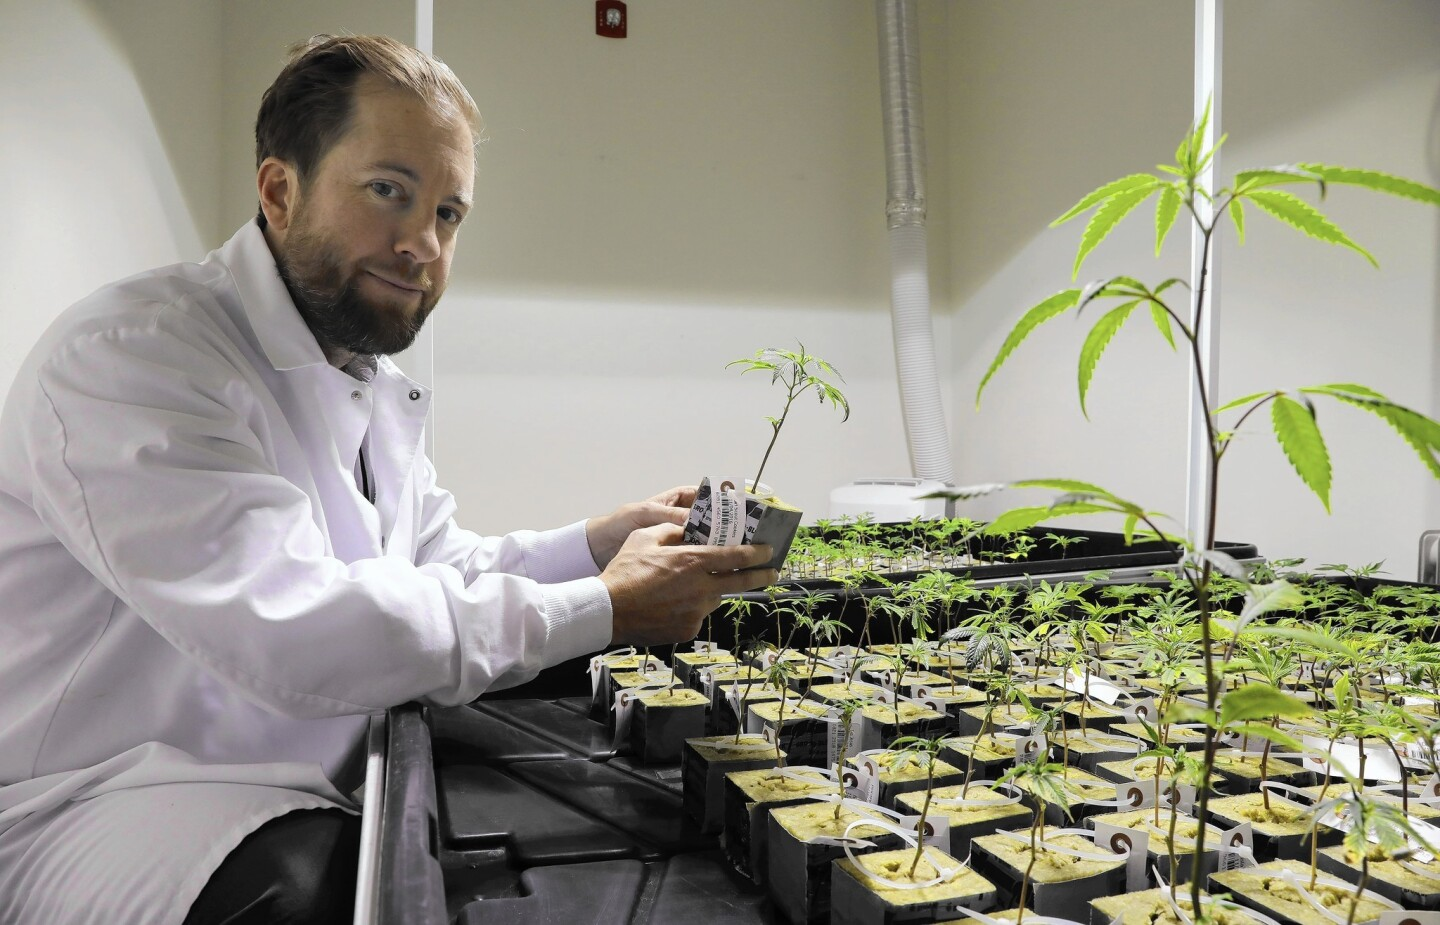 Charlie Bachtell, CEO and co-founder of Cresco Labs, checks on young cannabis plants Dec. 19, 2016, at Cresco Labs' Joliet facility. Cresco is a medical marijuana company.